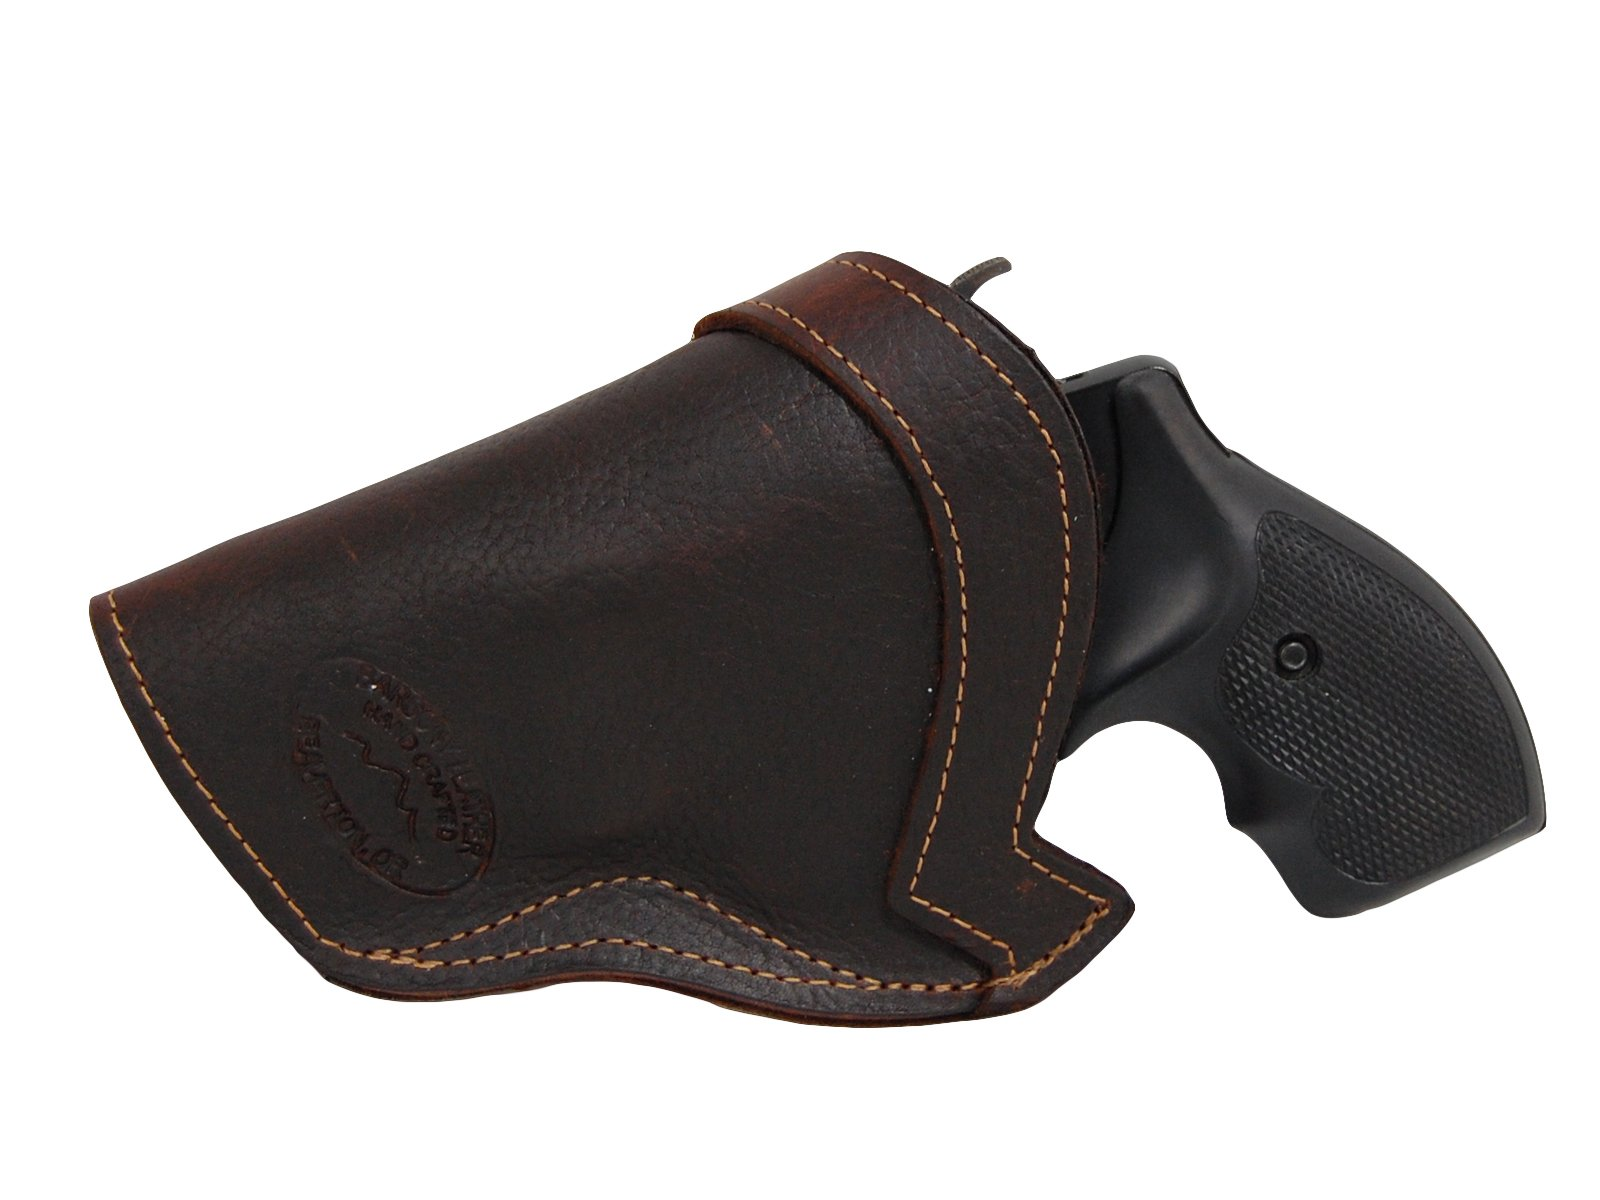 "Barsony New Brown Leather IWB Holster for 2"", Snub Nose .38 .357 Revolvers"